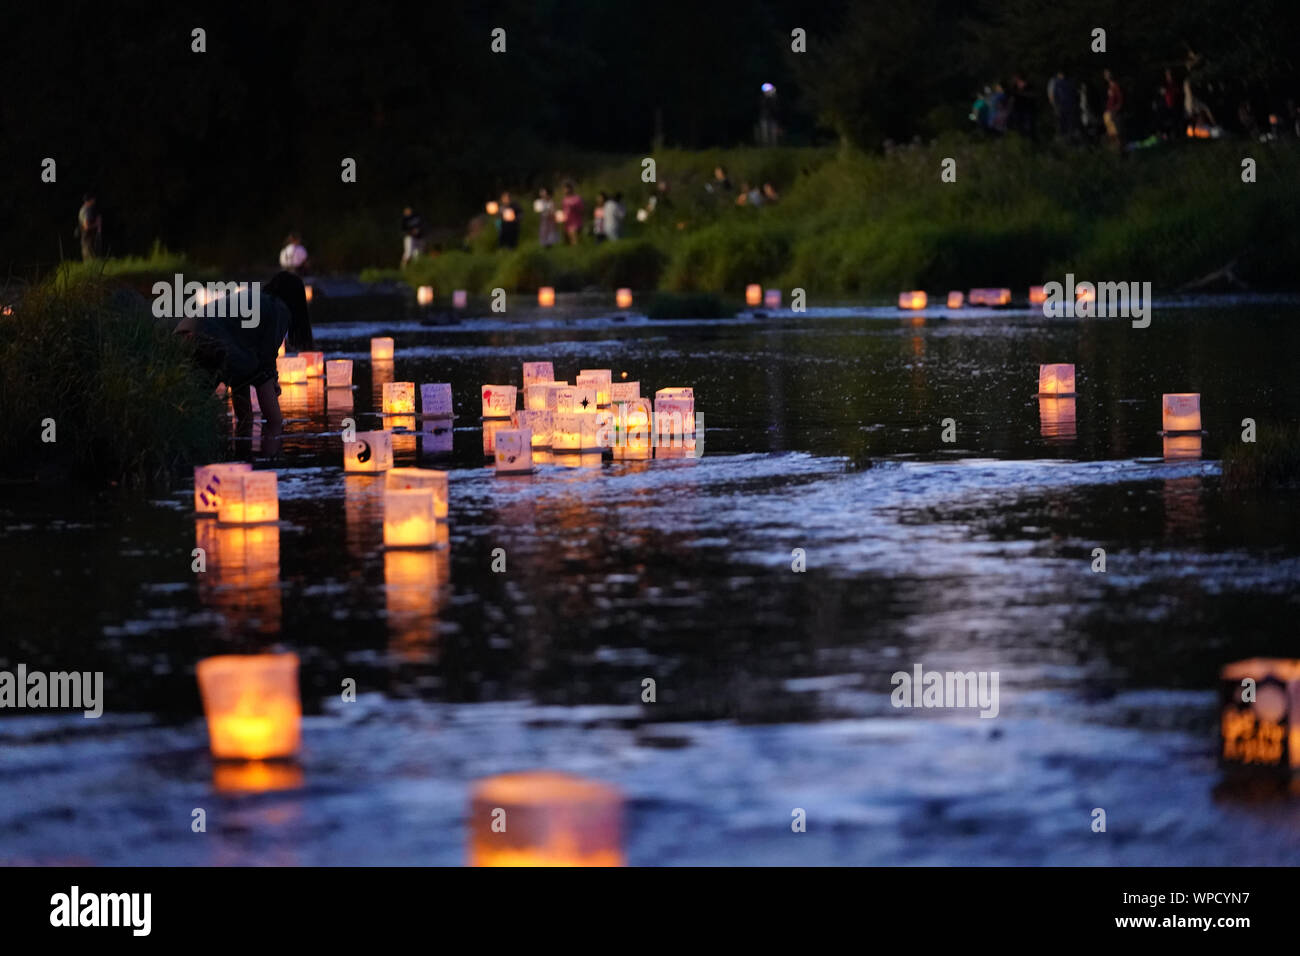 Many water Lanterns float downstream from people releasing them at Pamperin Park in Green Bay, Wisconsin Stock Photo